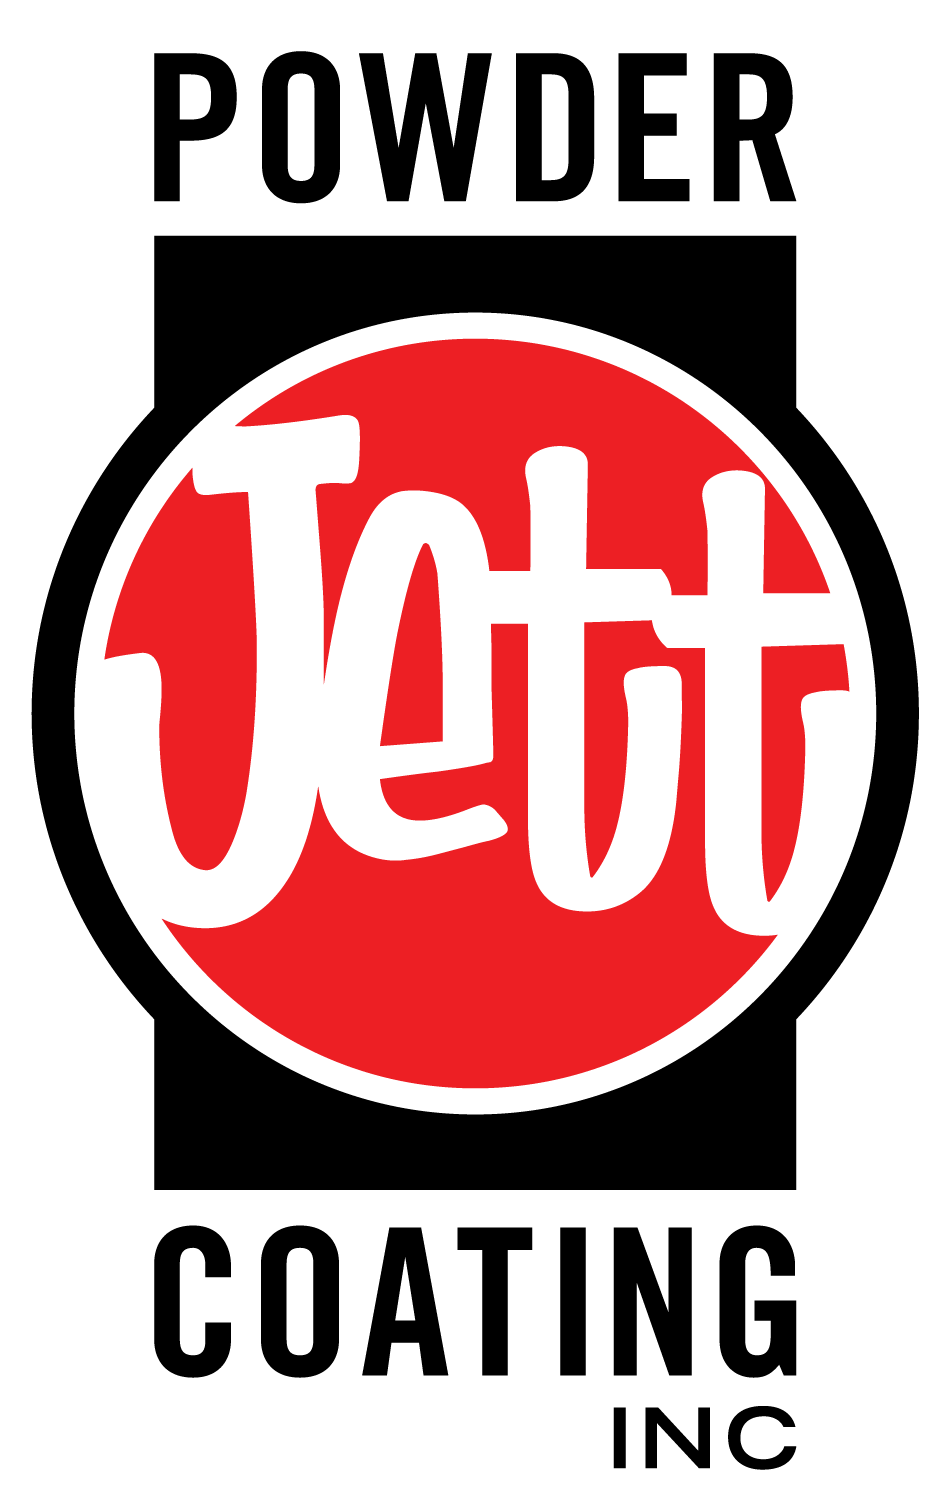 jett-powder-coating